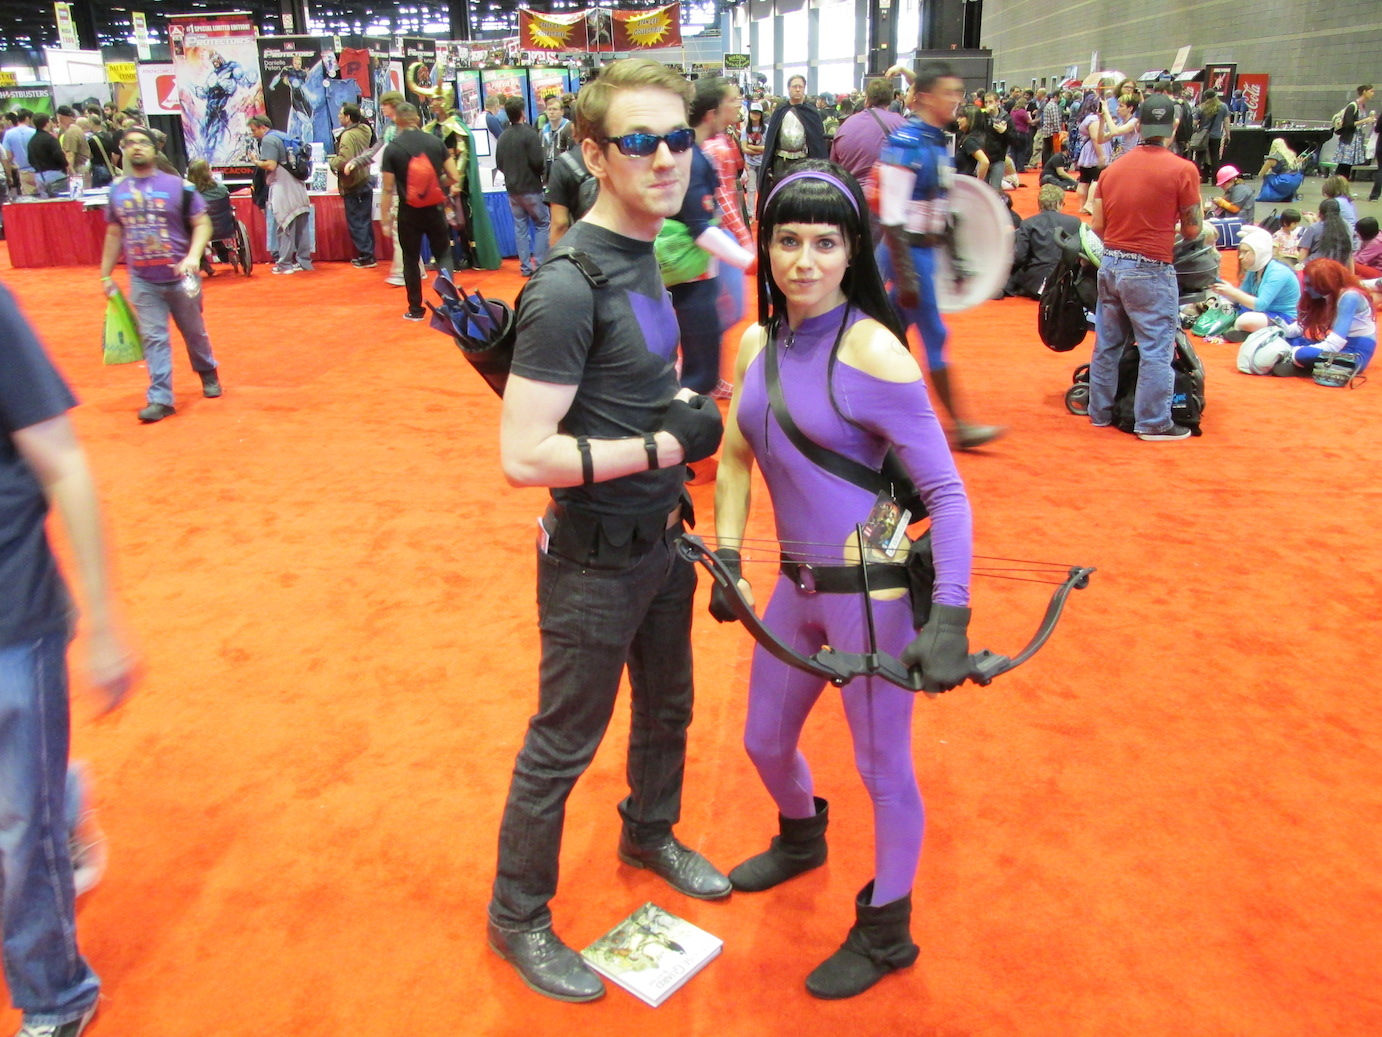 Hawkguy and Hawkeye